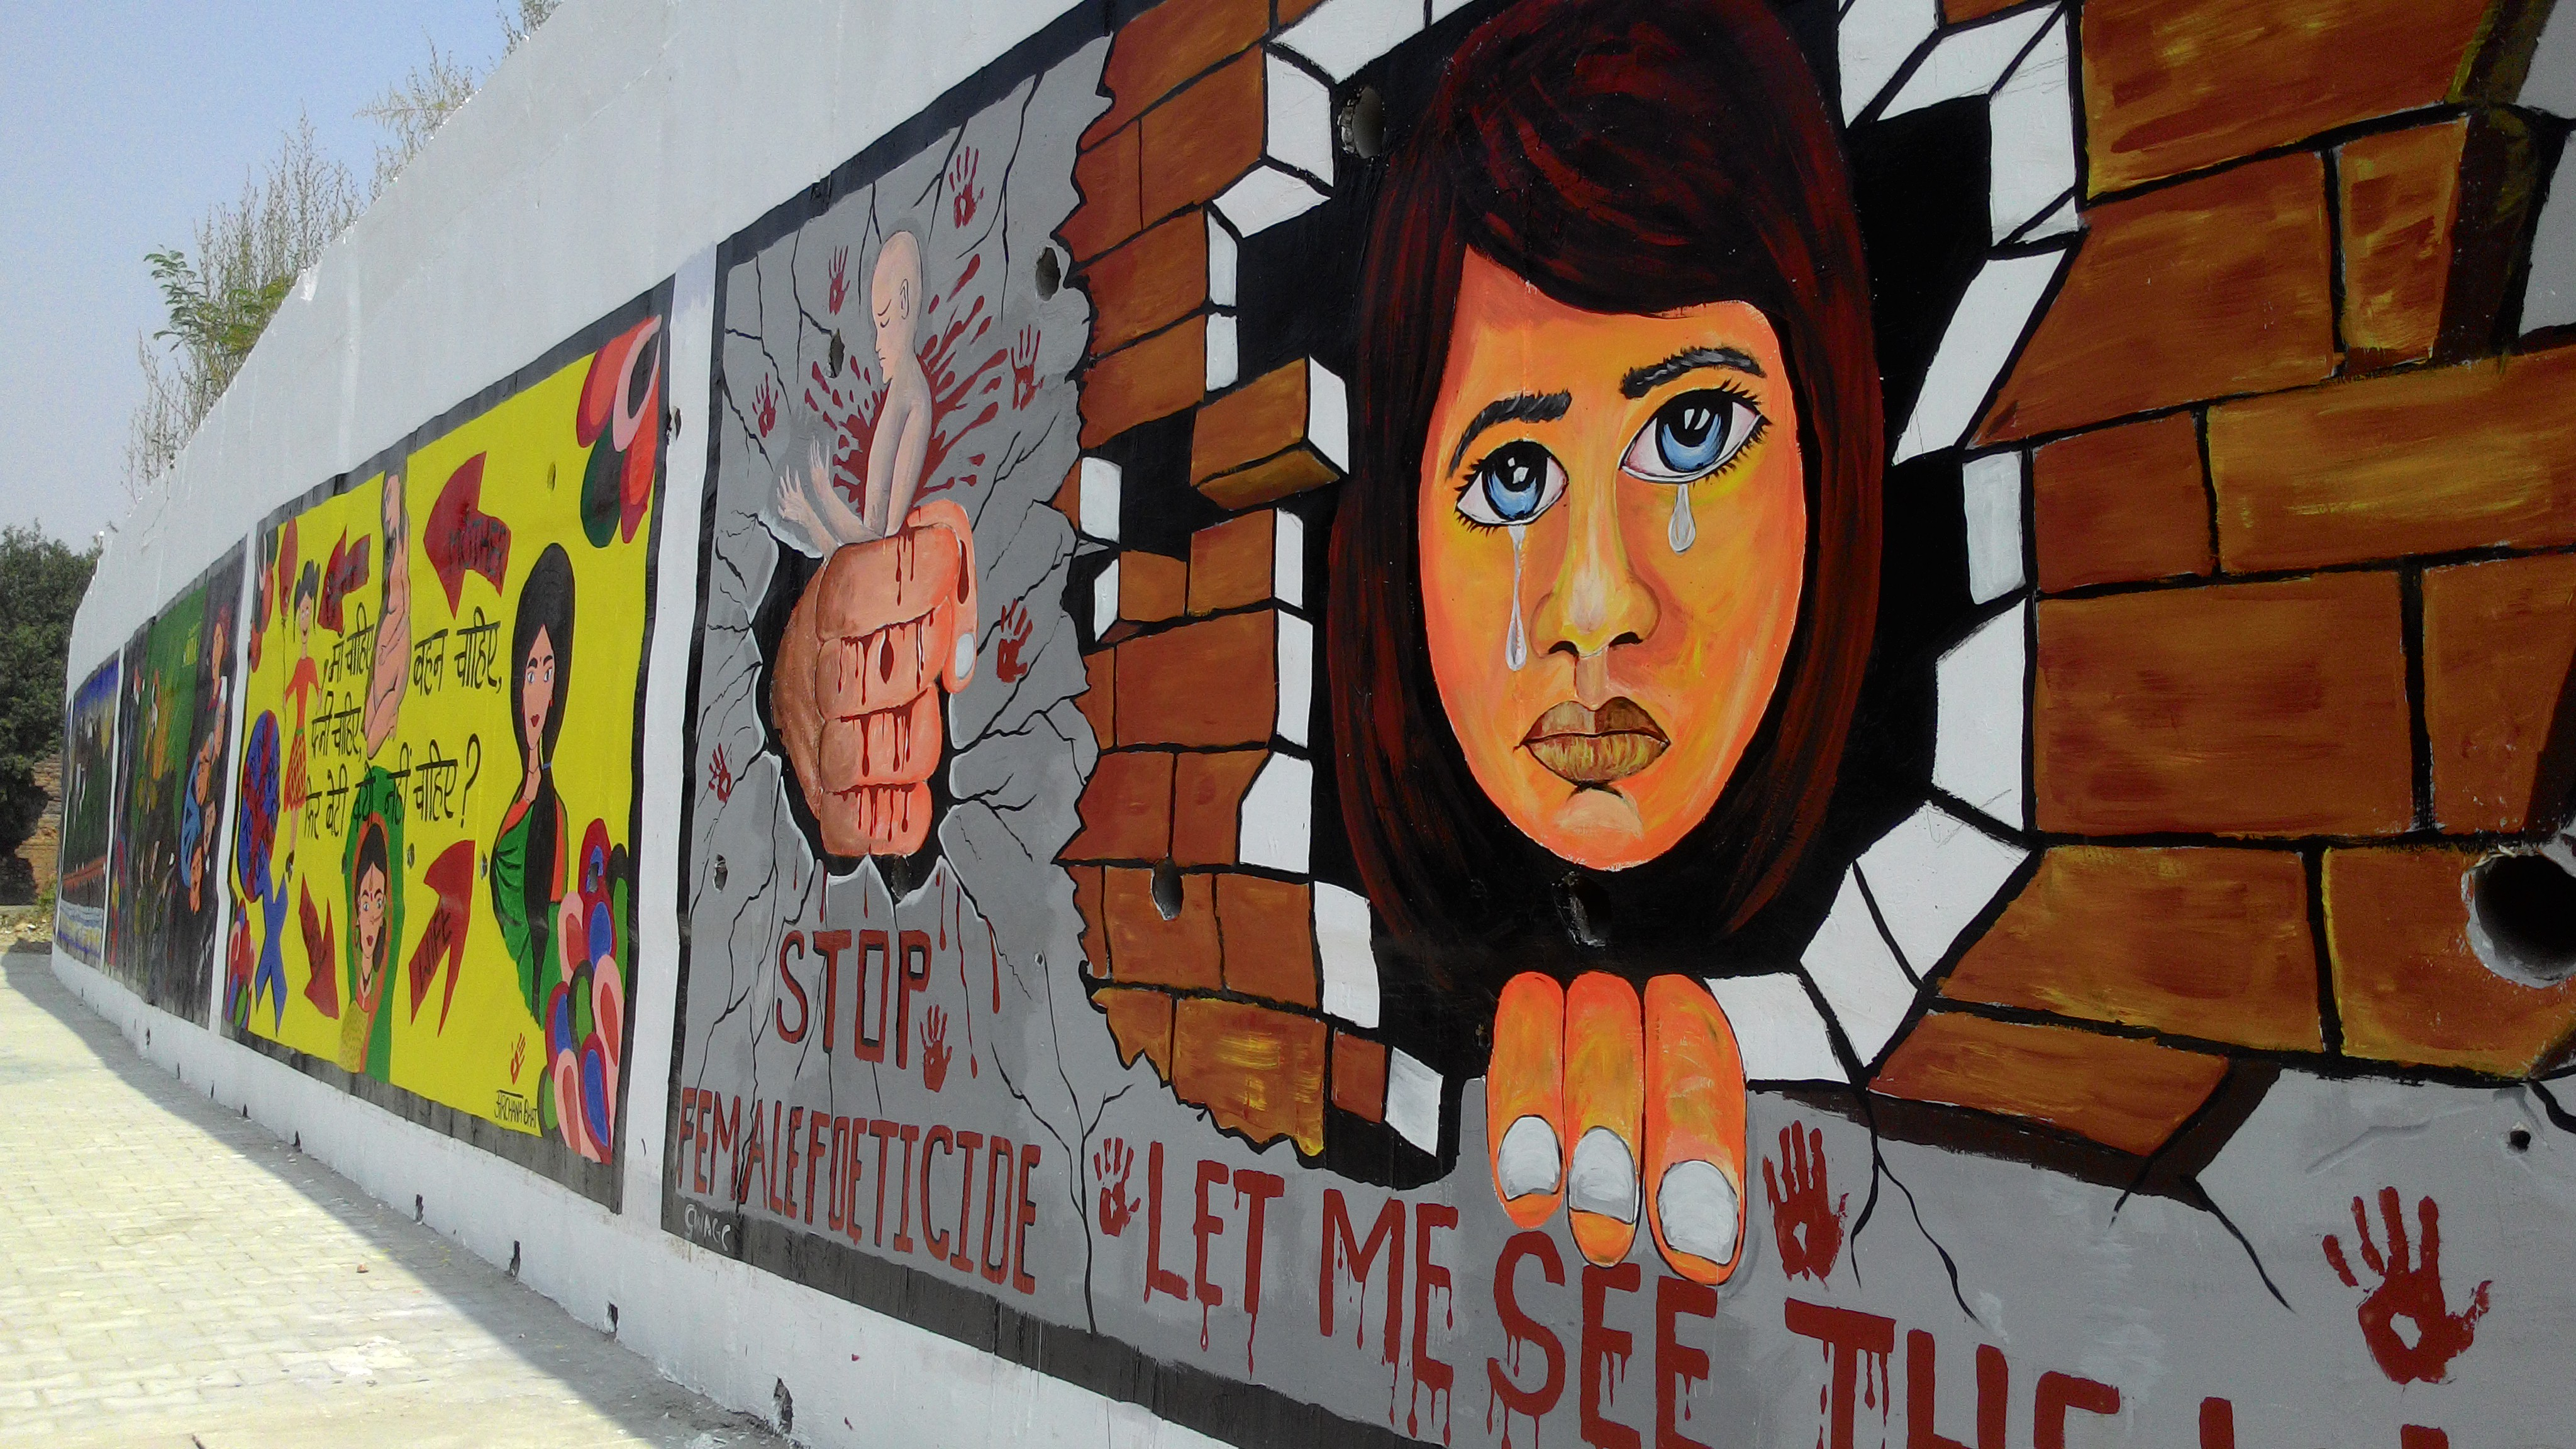 Travel Art Series Jammu Wall Paintings Voice Out Strong Social Messages Pendown Art Travel And Culture Blog